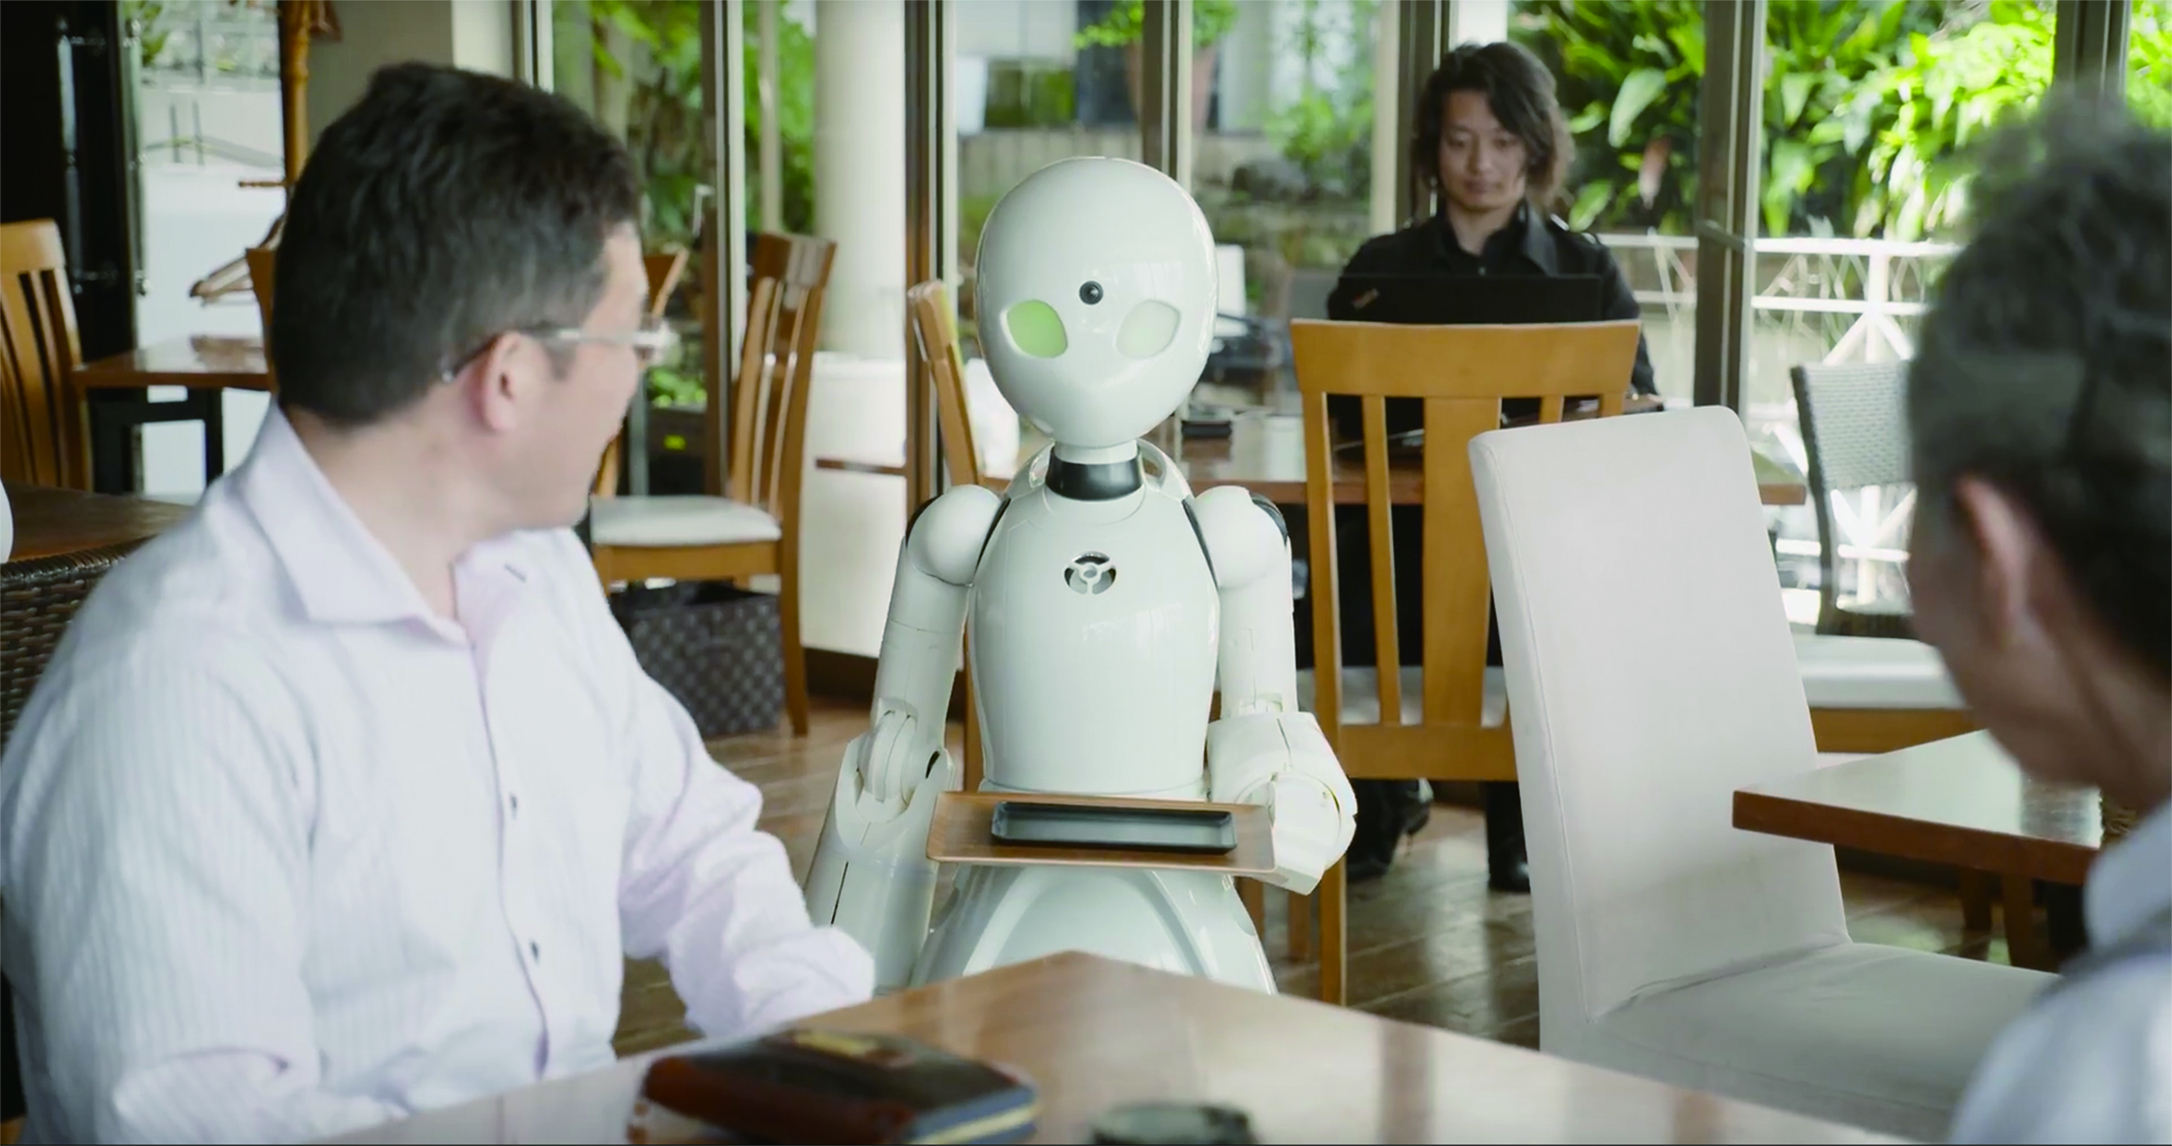 Pop-up cafe in Tokyo features robot waiters controlled by people with disabilities